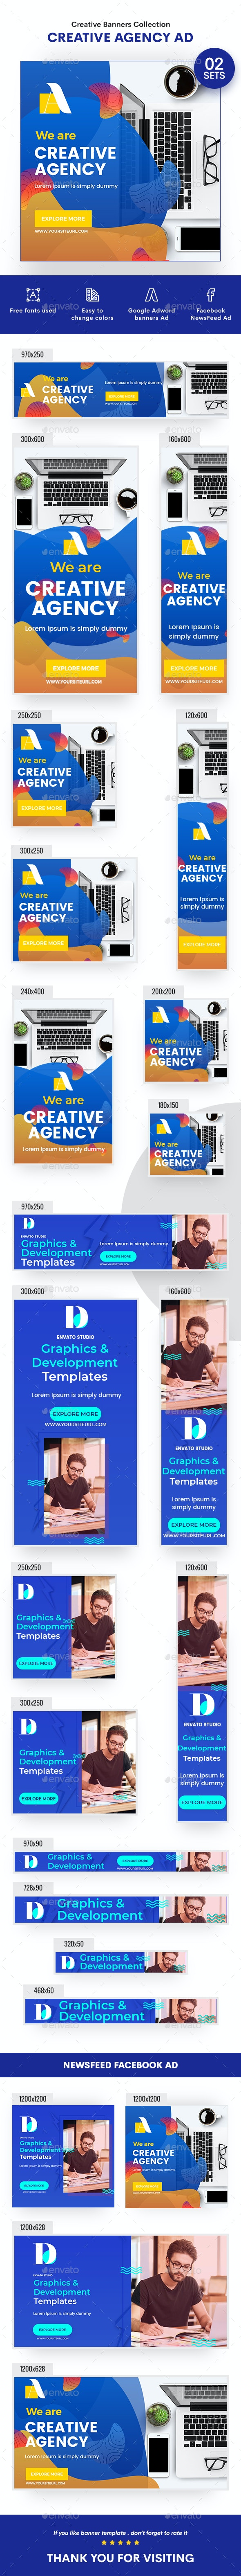 Multipurpose, Creative, Startup Agency Banners Ad - 02 Sets - Banners & Ads Web Elements